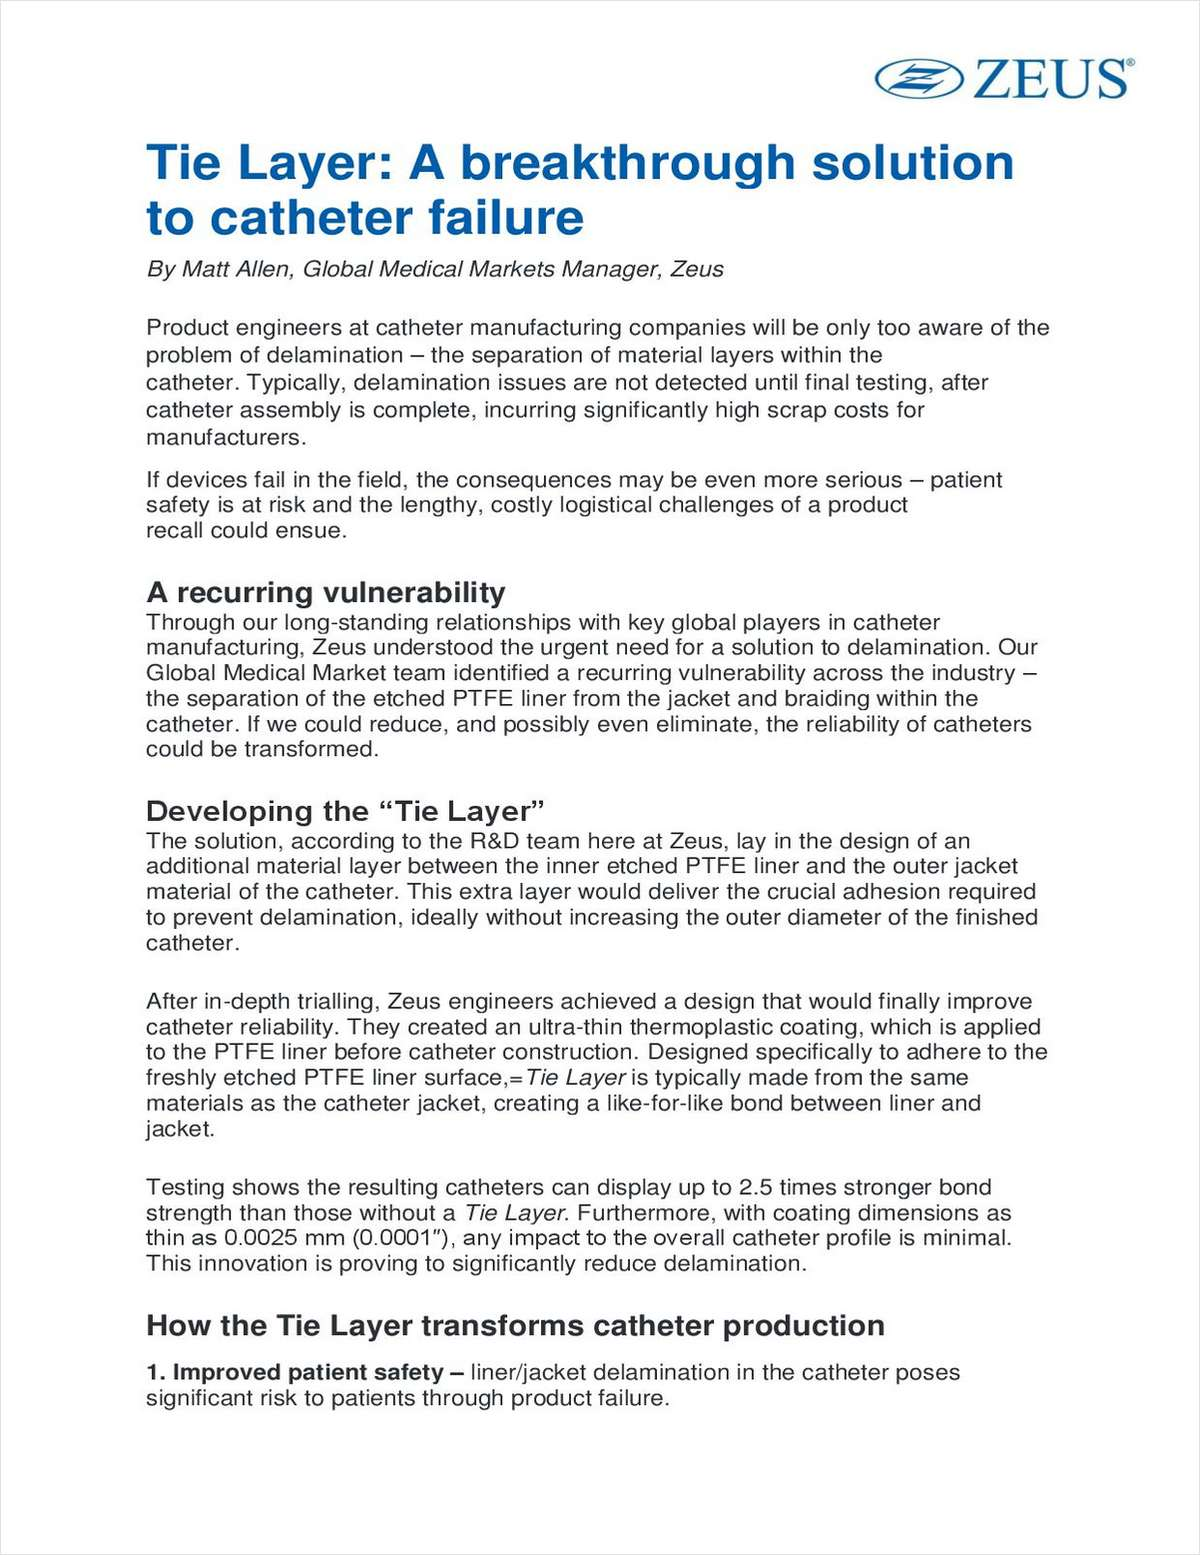 Tie Layer: A breakthrough solution to catheter failure